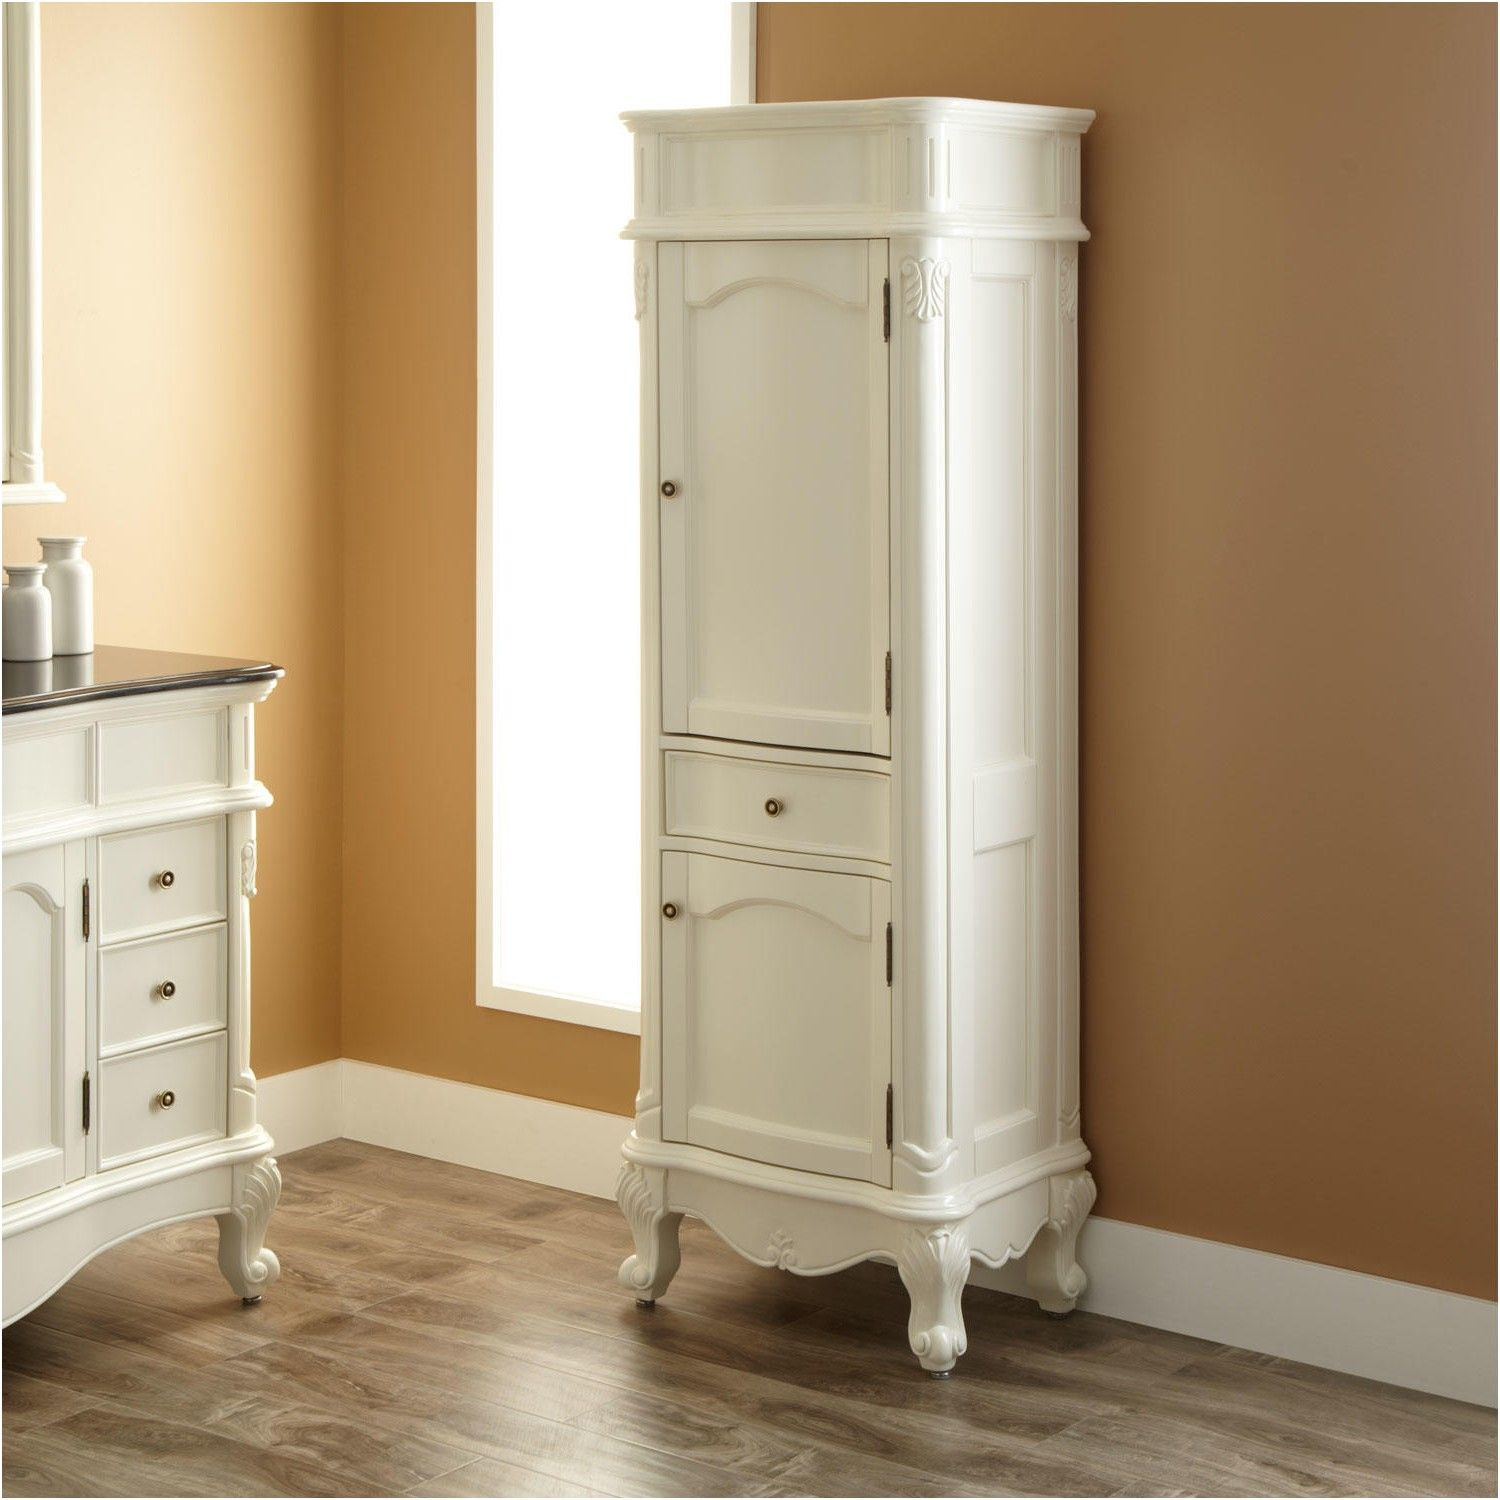 Target Medicine Cabinet Captivating Interesting Bathroom Cabinets Tar Storage E On Inspiration From Design Inspiration